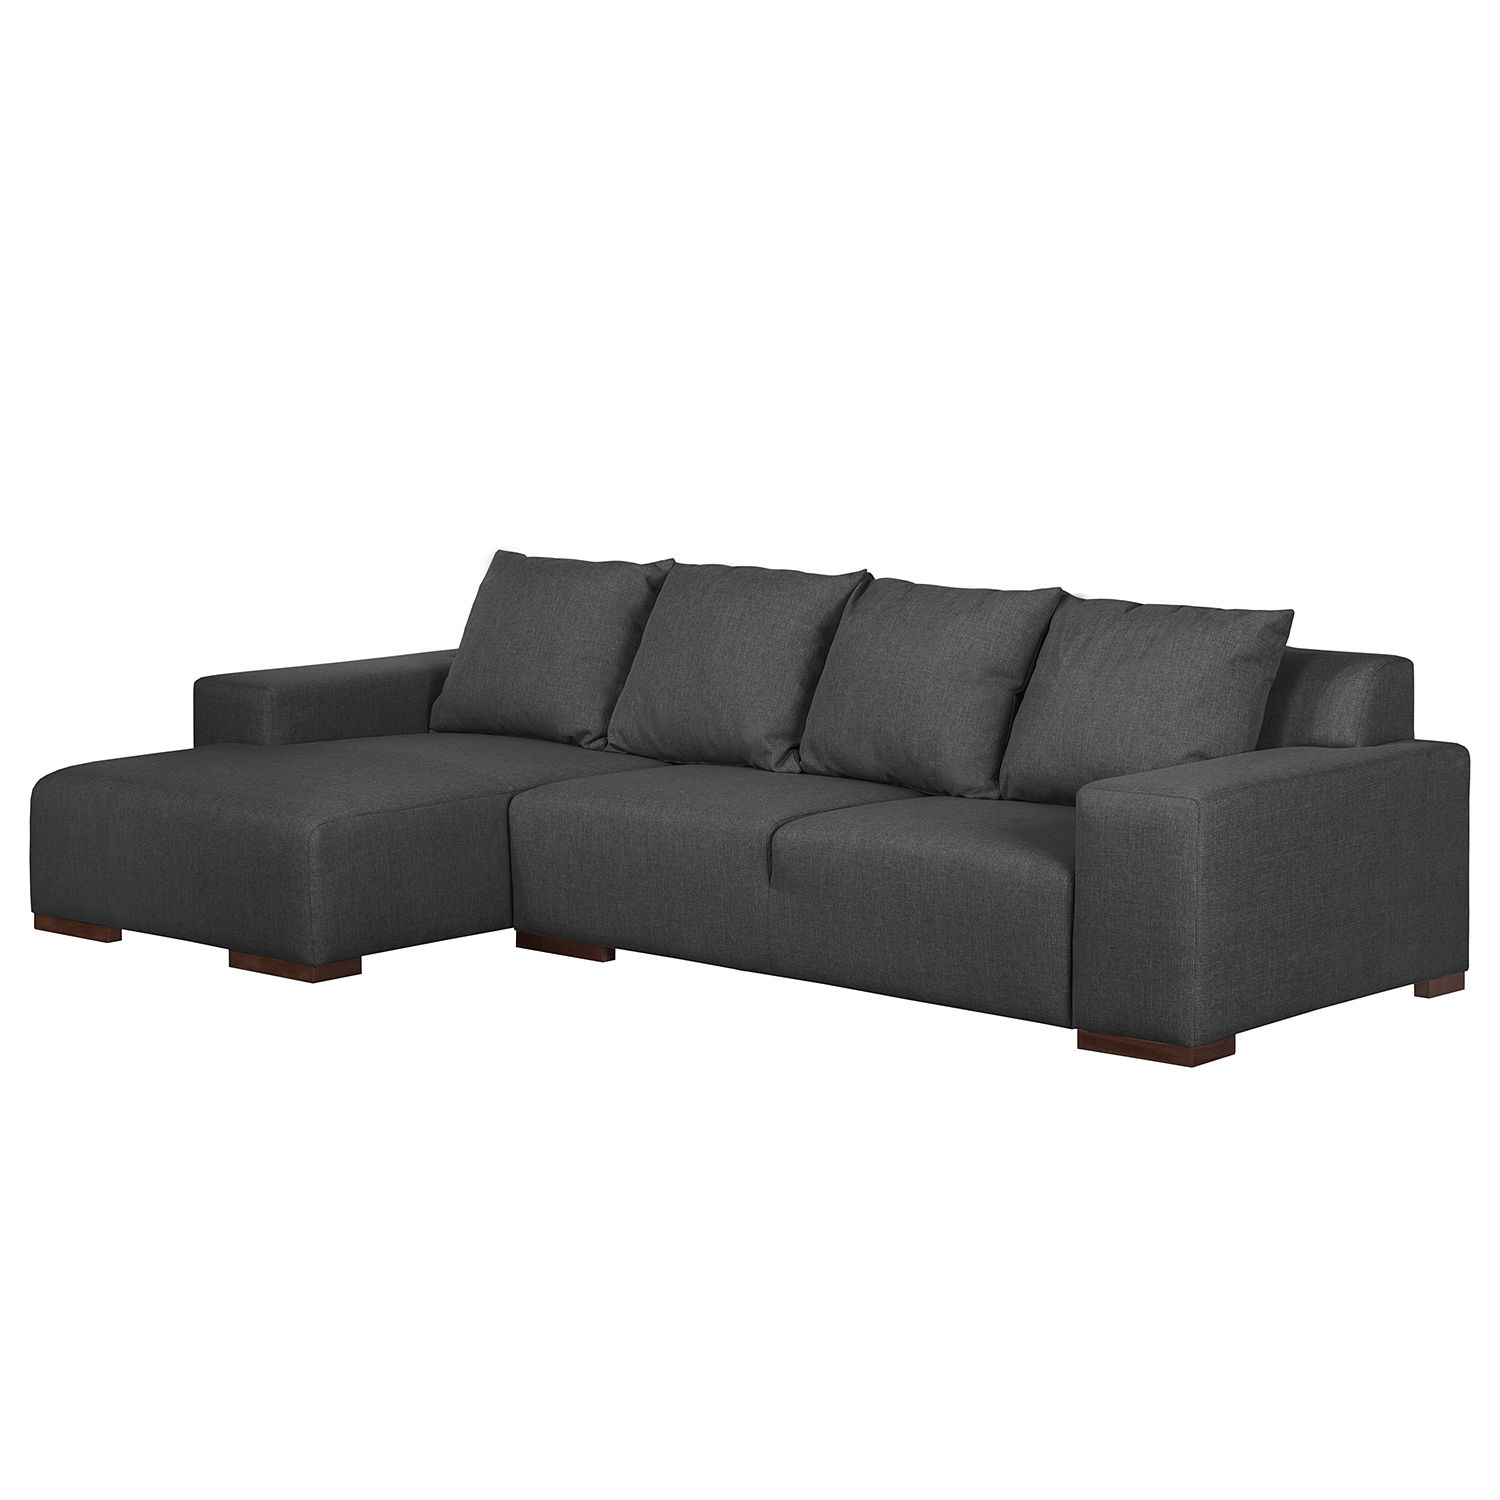 Ecksofa Arrimal II - Webstoff - Longchair/Ottomane davorstehend links - Anthrazit, roomscape